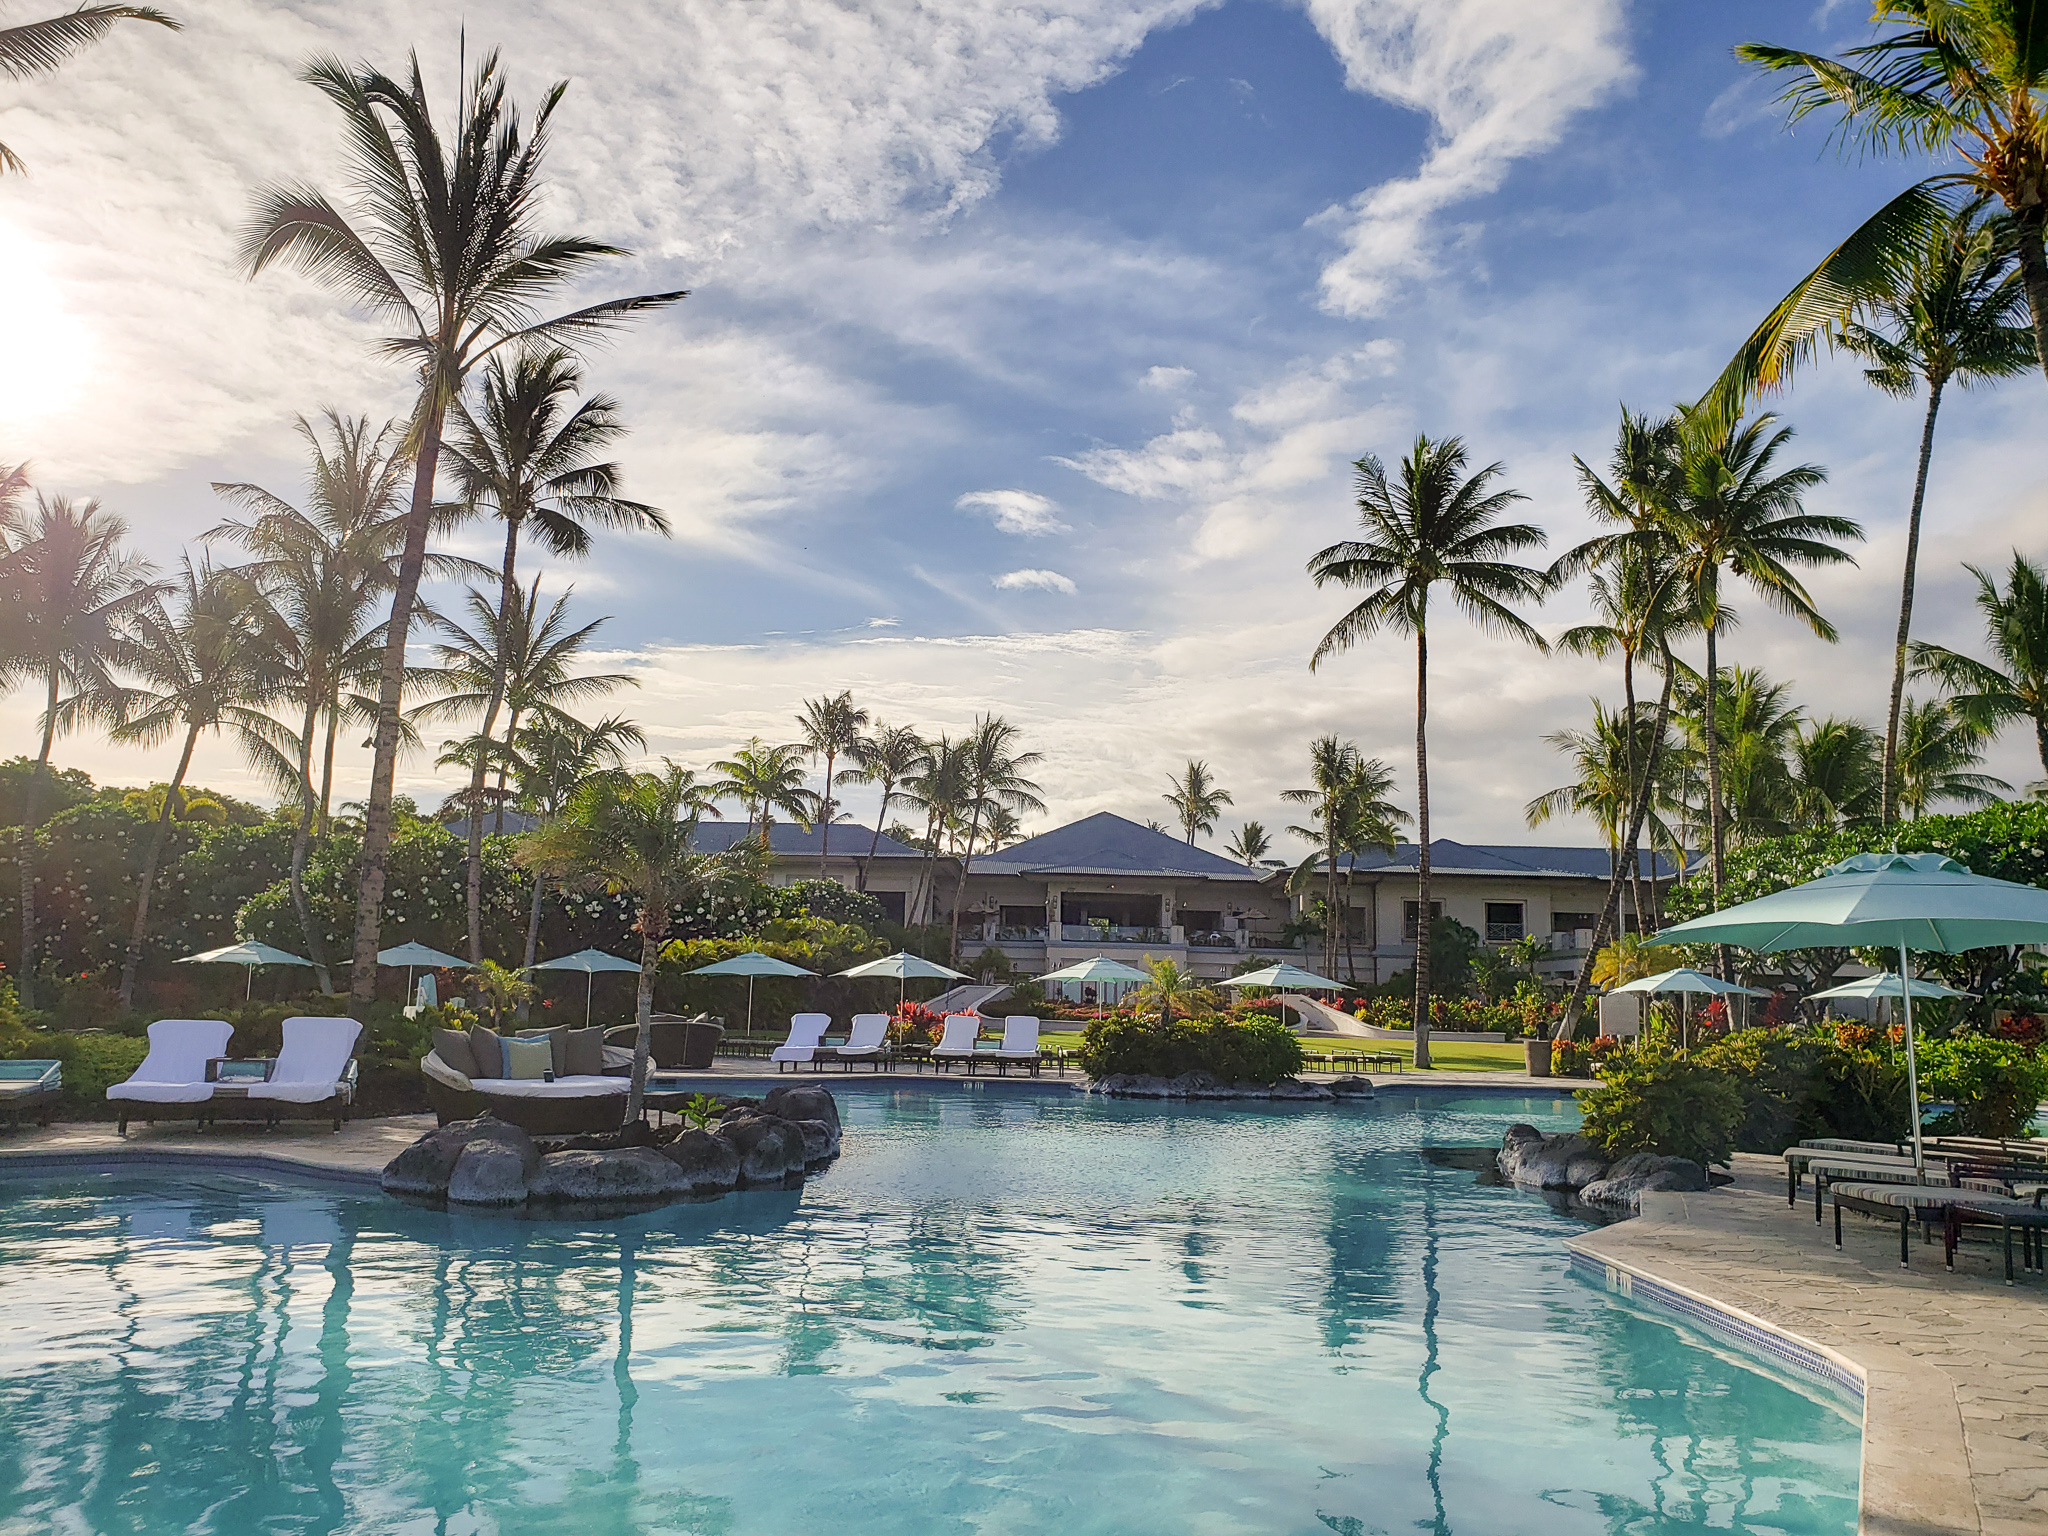 Staying at the Fairmont Orchid resort, Hawaii - Forever Lost In Travel